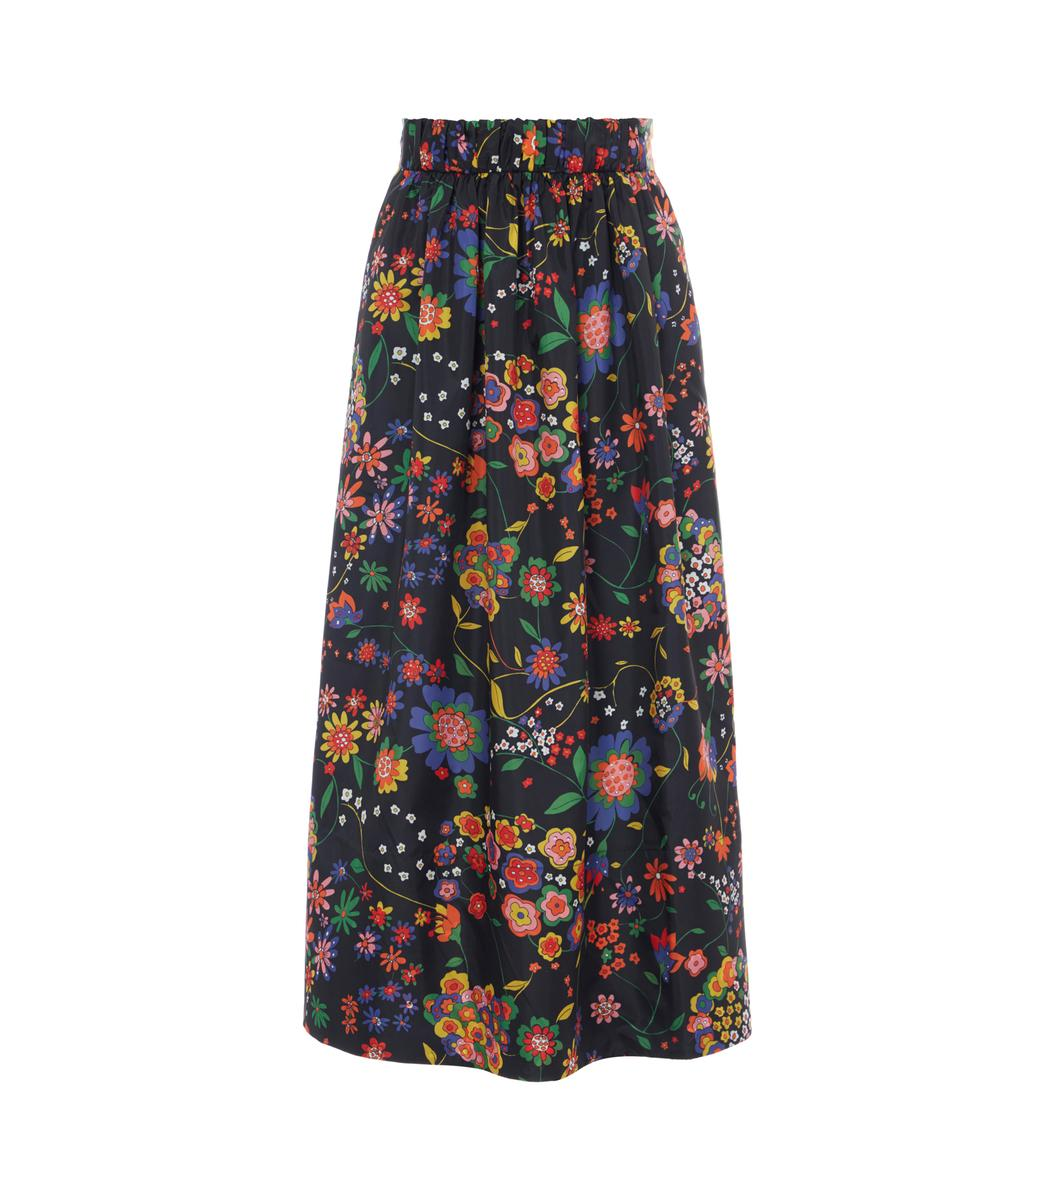 13771ffed3 Tibi Floral Smocked Waistband Skirt In Black. SIZE & FIT INFORMATION